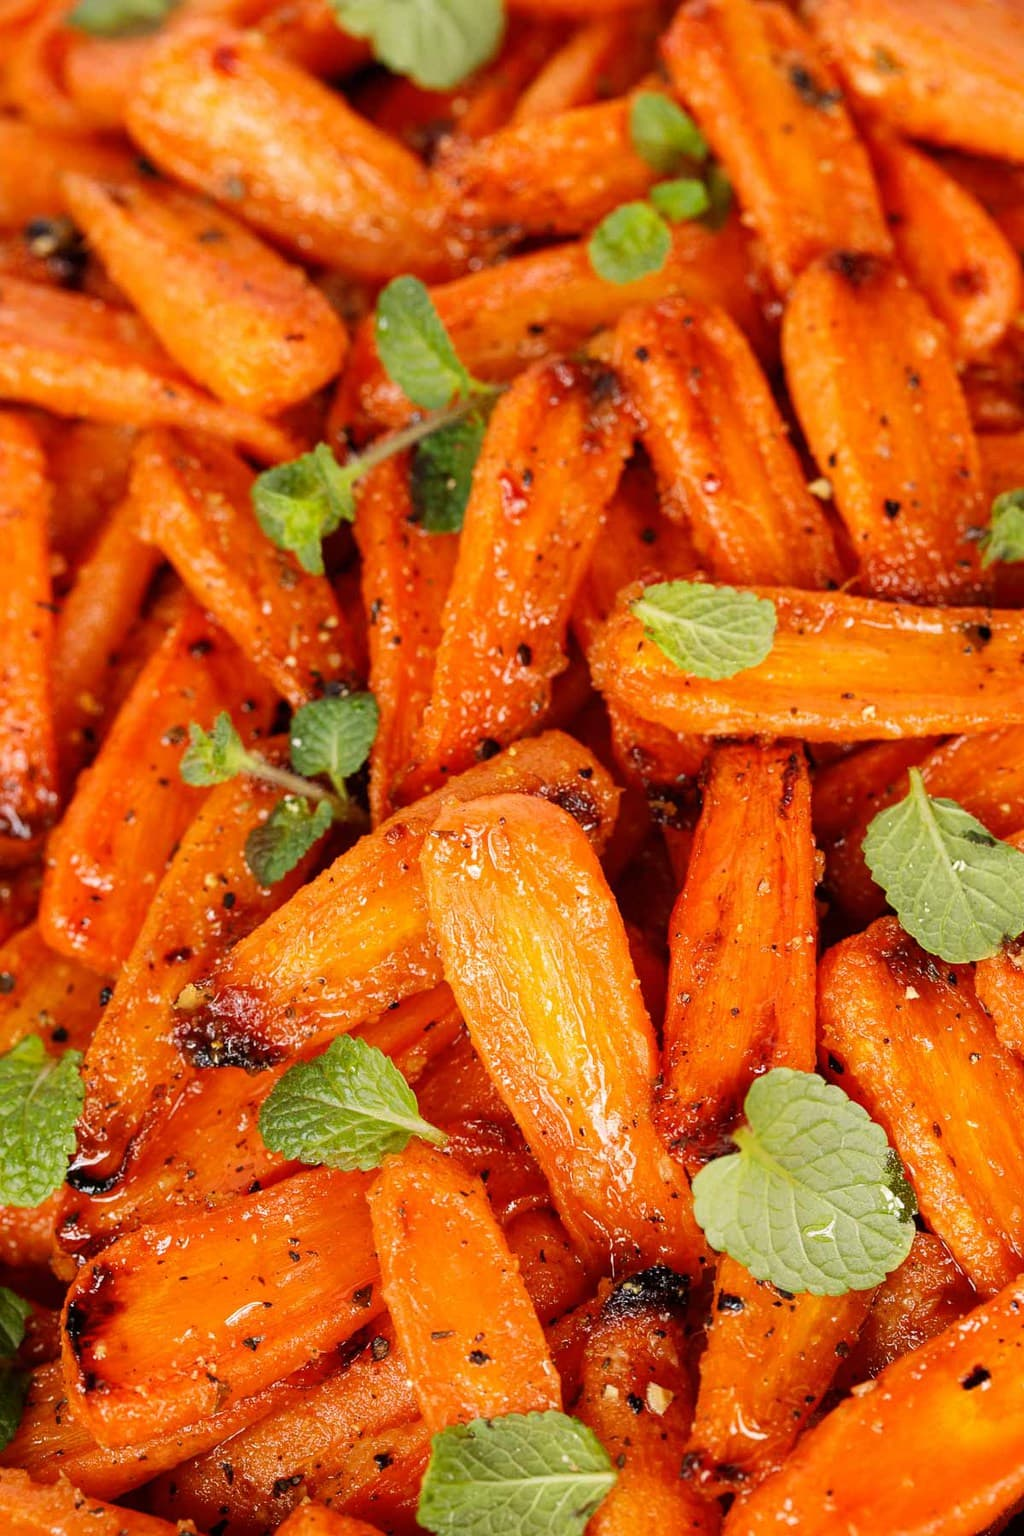 Ultra closeup photo of Honey Ginger Charred Carrots garnished with fresh mint leaves.